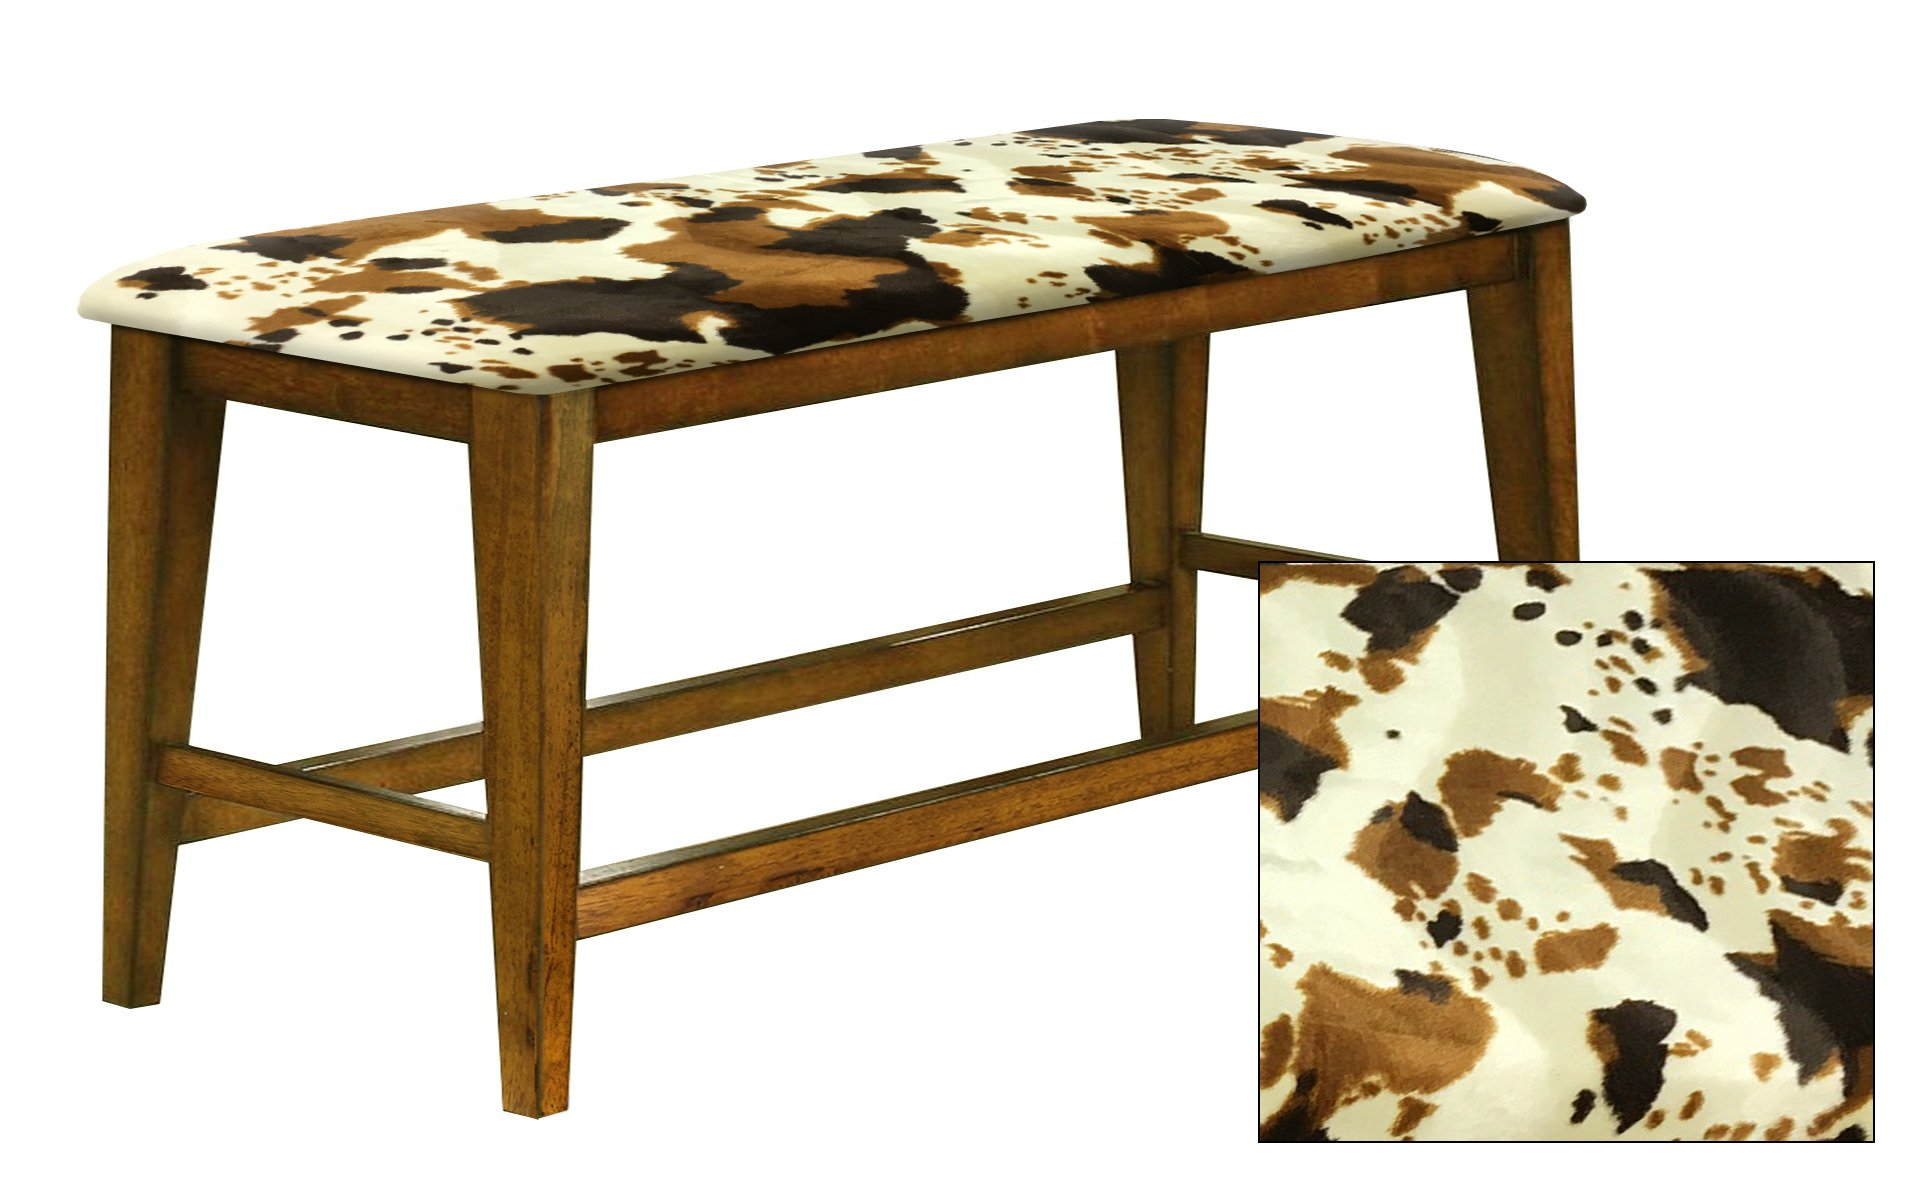 "Counter Height 25"" Tall Universal Bench in an Oak Finish Featuring a Padded Seat Cushion With Your Choice of an Animal Print Fabric Covered Seat Cushion (Cowhide Faux Fur)"